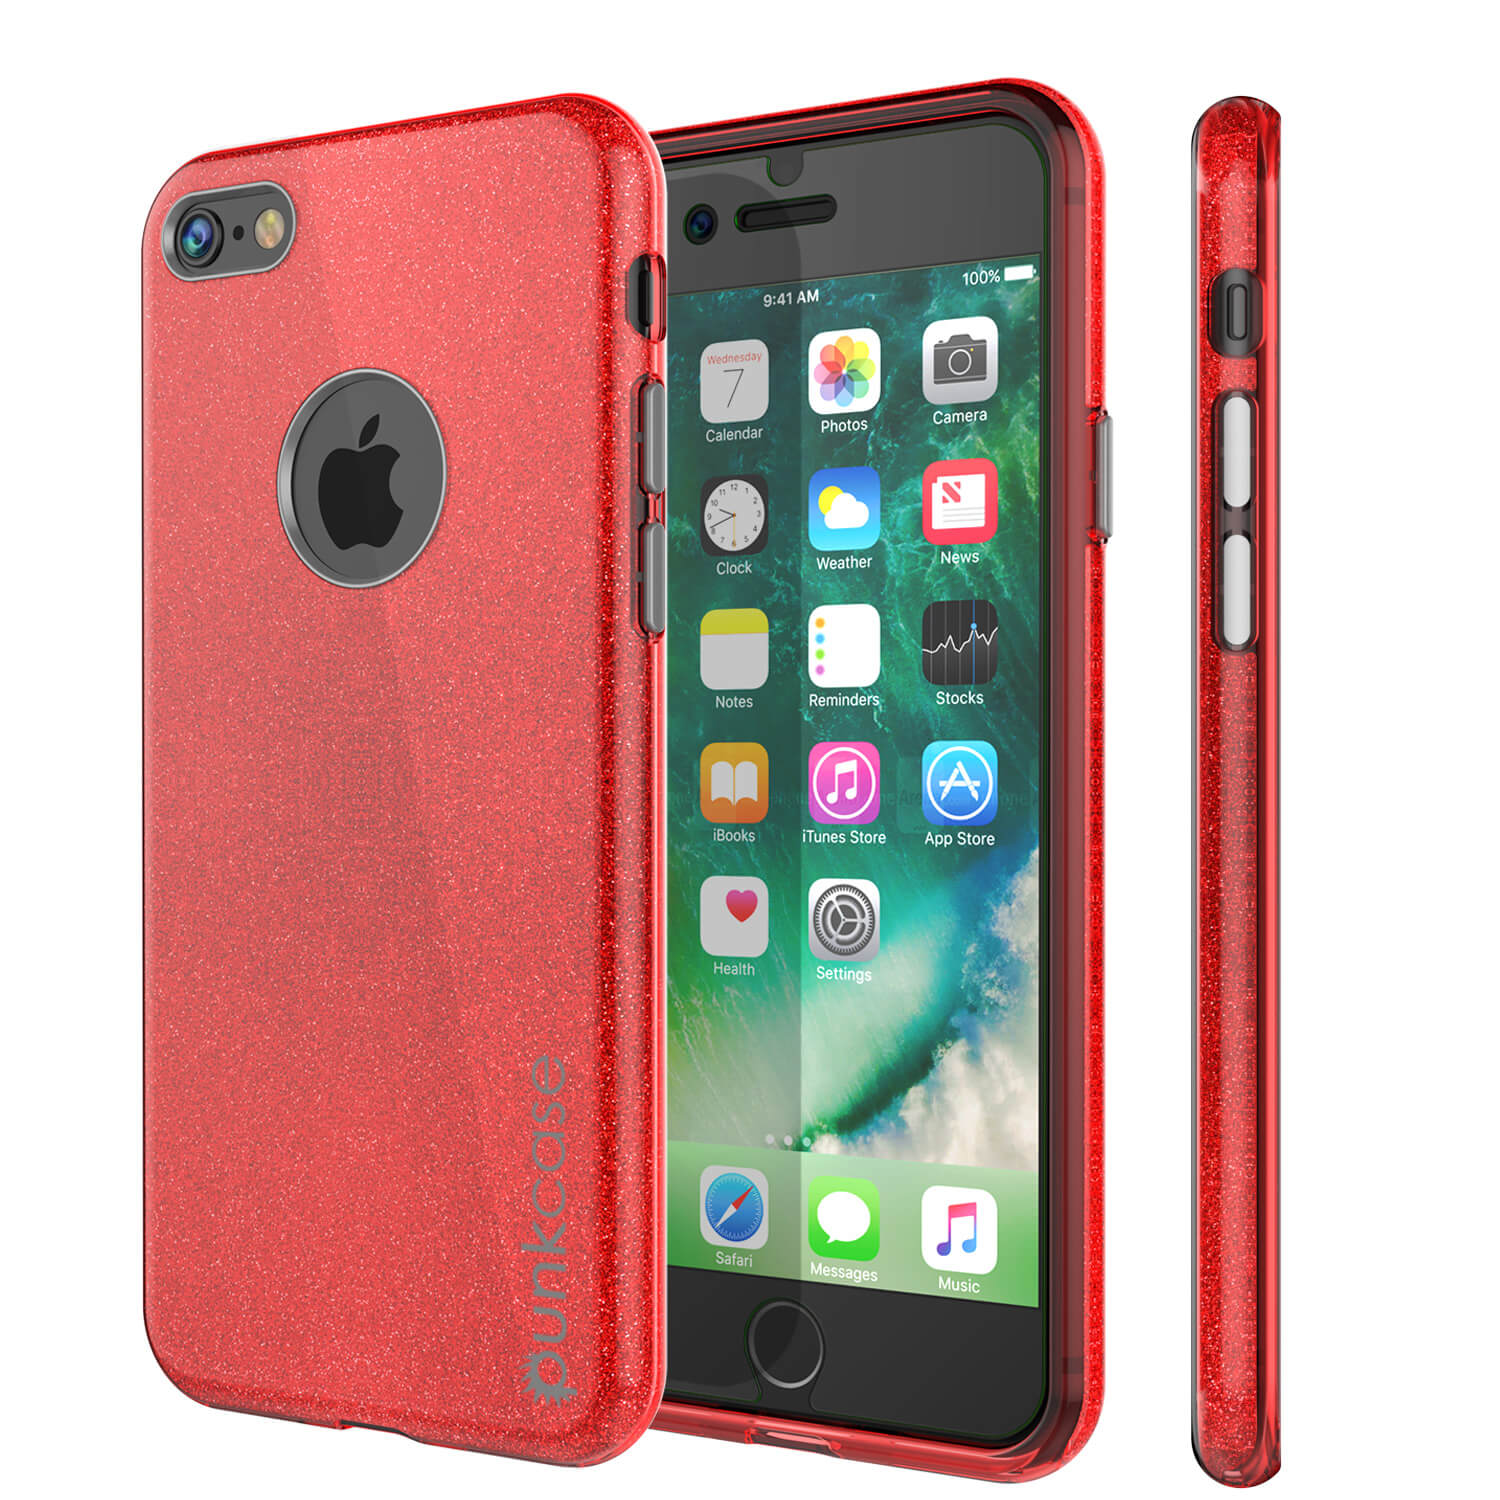 iPhone 6s/6 Case PunkCase Galactic Red Slim w/ Tempered Glass | Lifetime Warranty